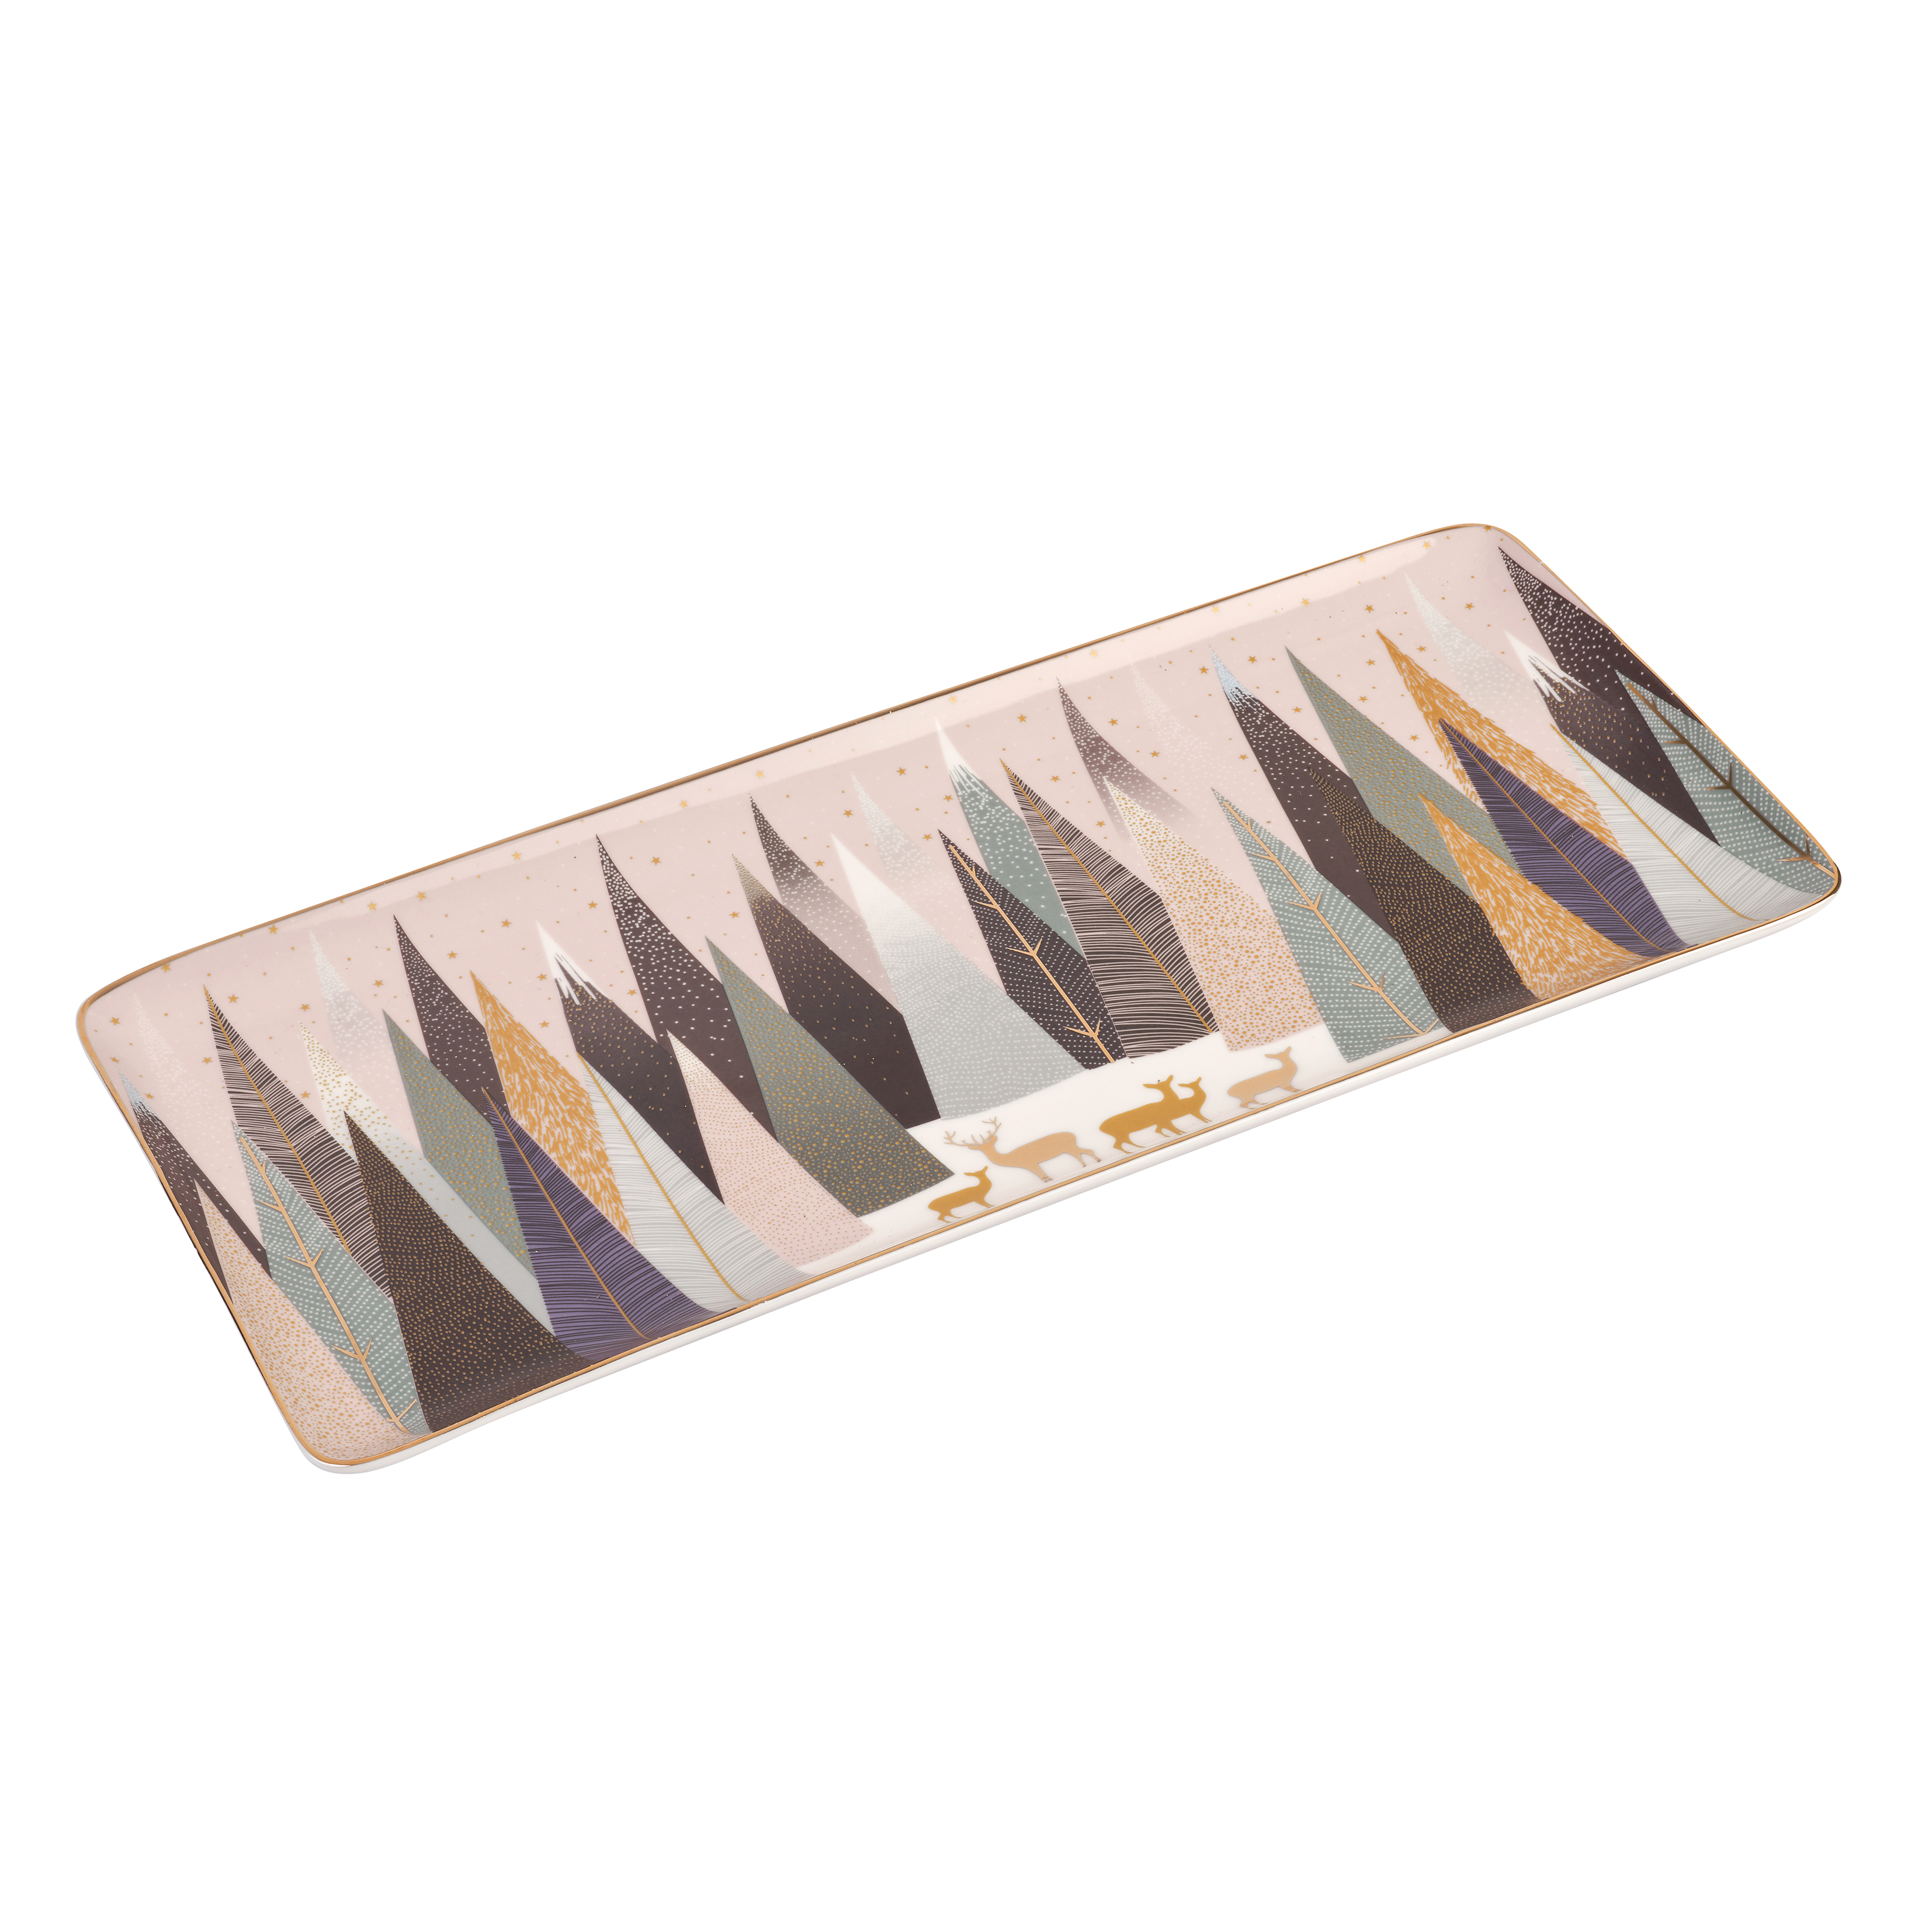 Sara Miller London for Portmeirion Frosted Pines 14 Inch Sandwich Tray image number 1